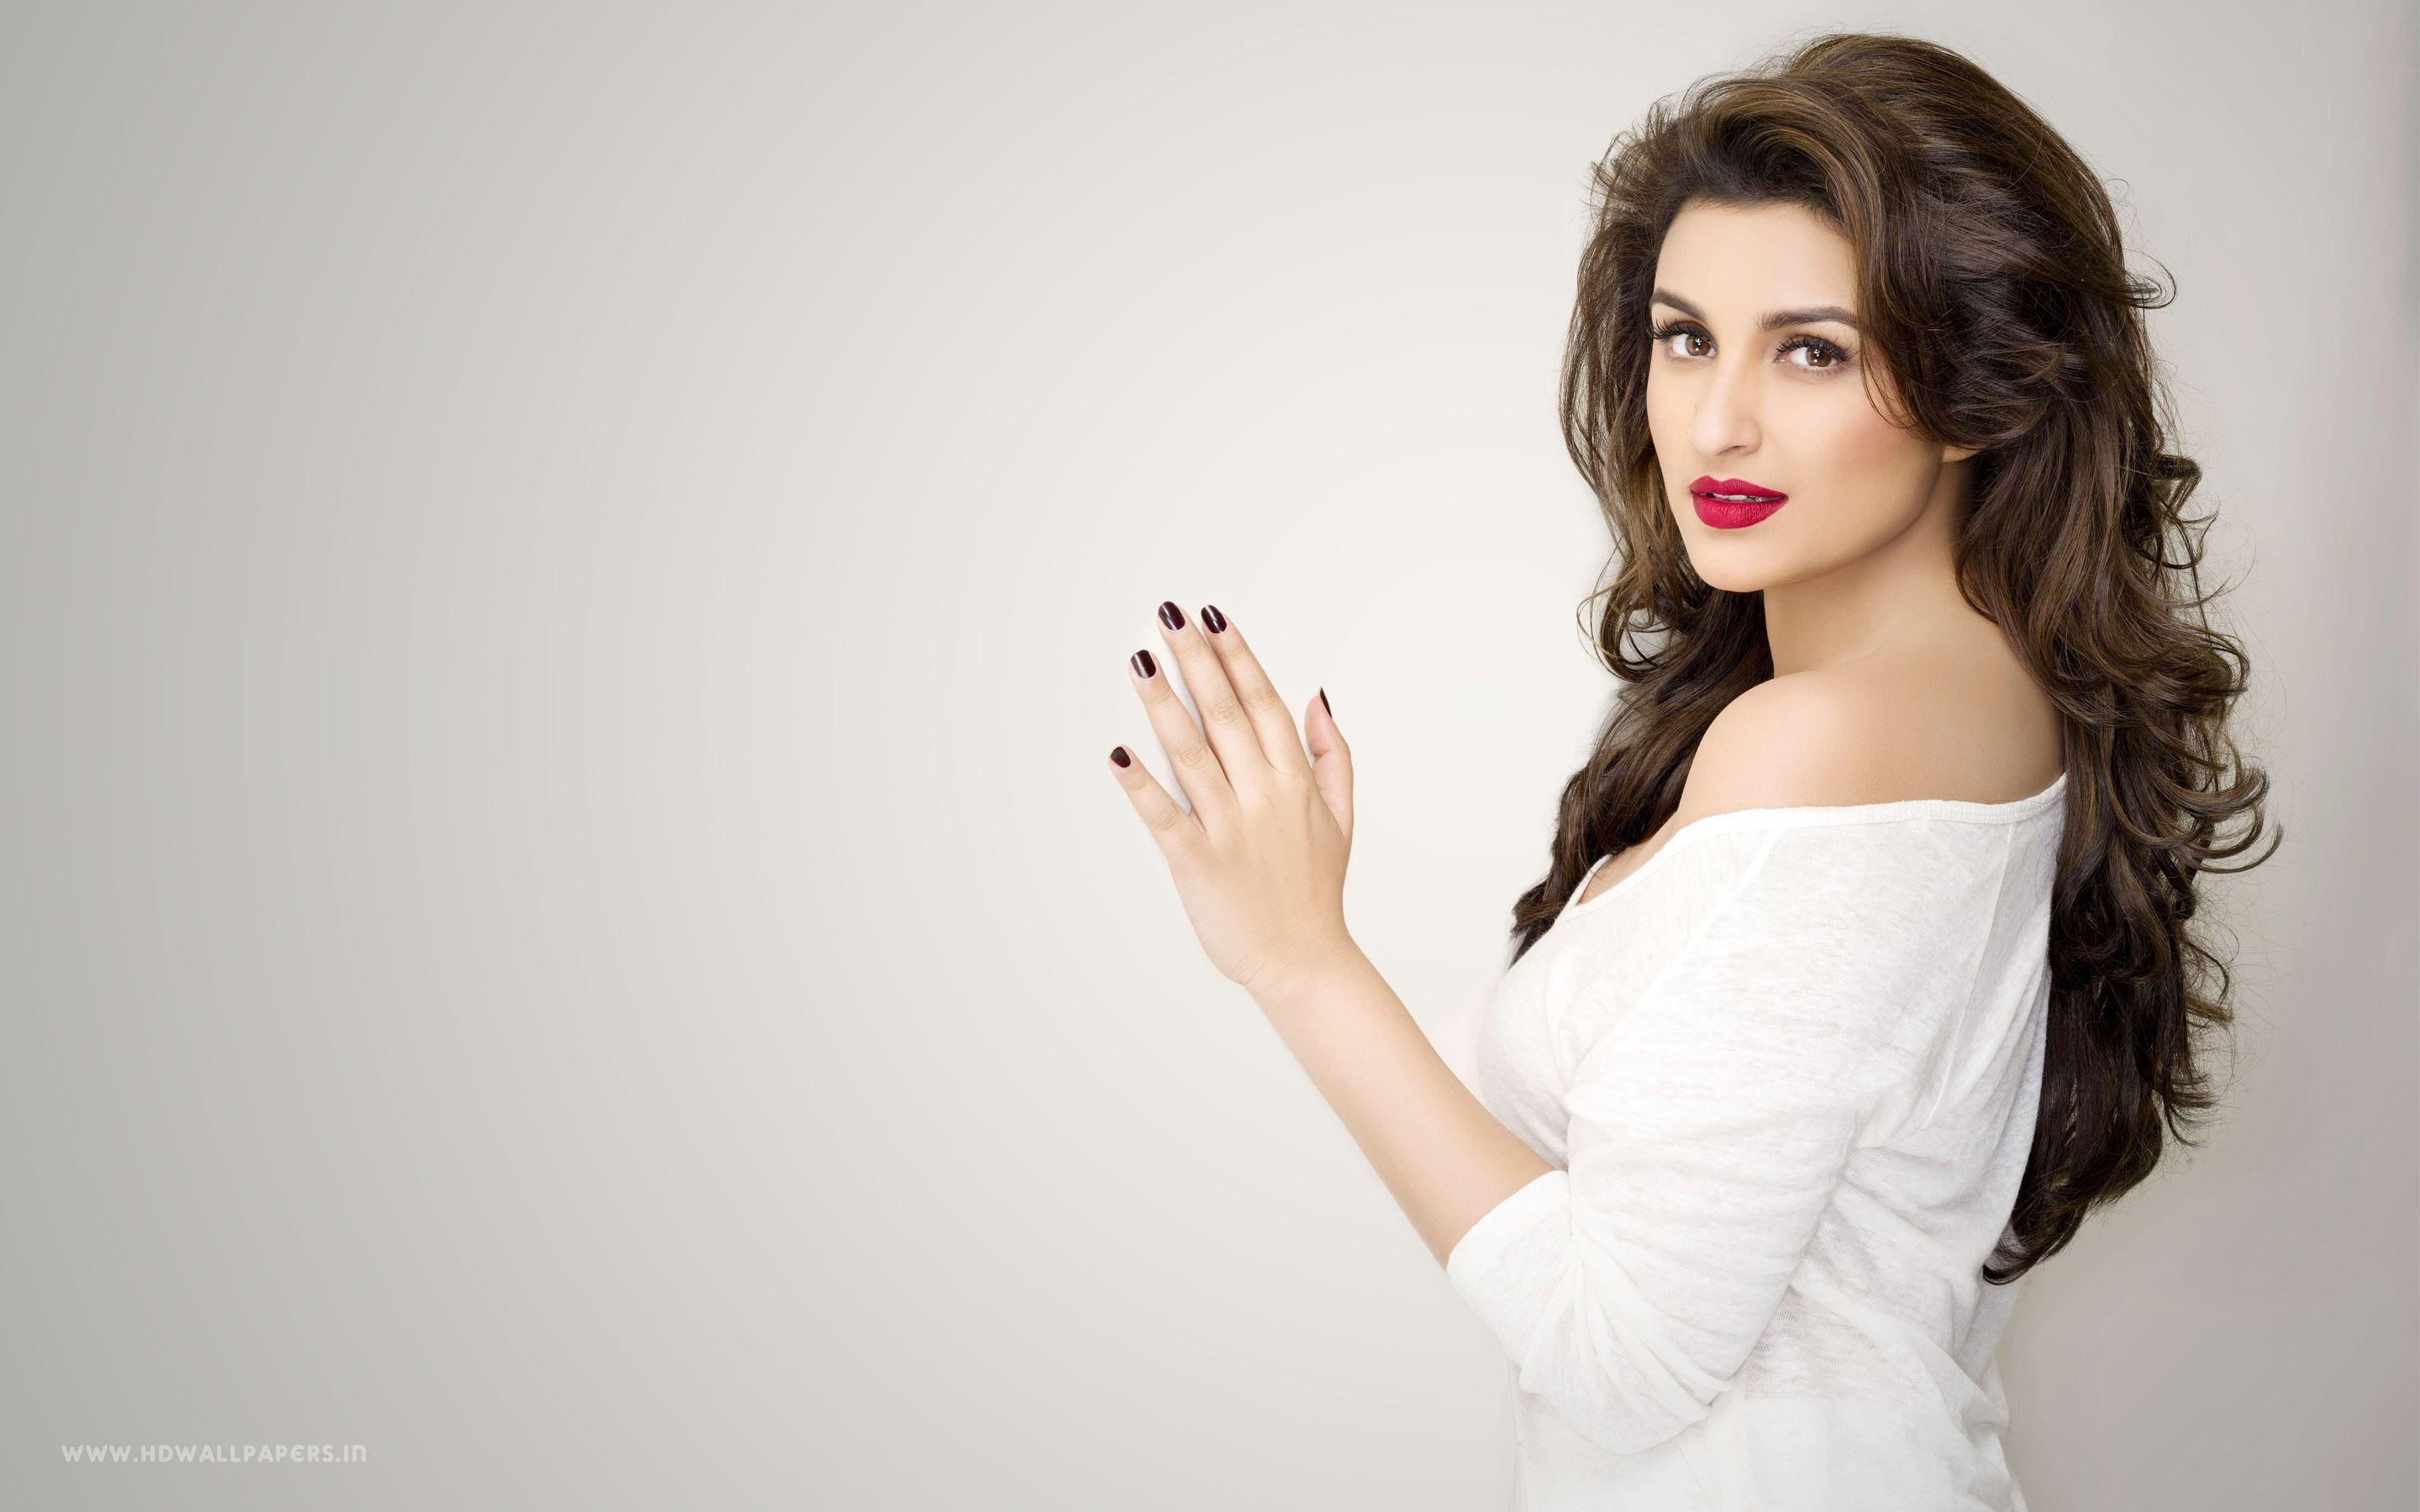 Top 51 Parineeti Chopra Nice HD Wallpapers Pics And Images